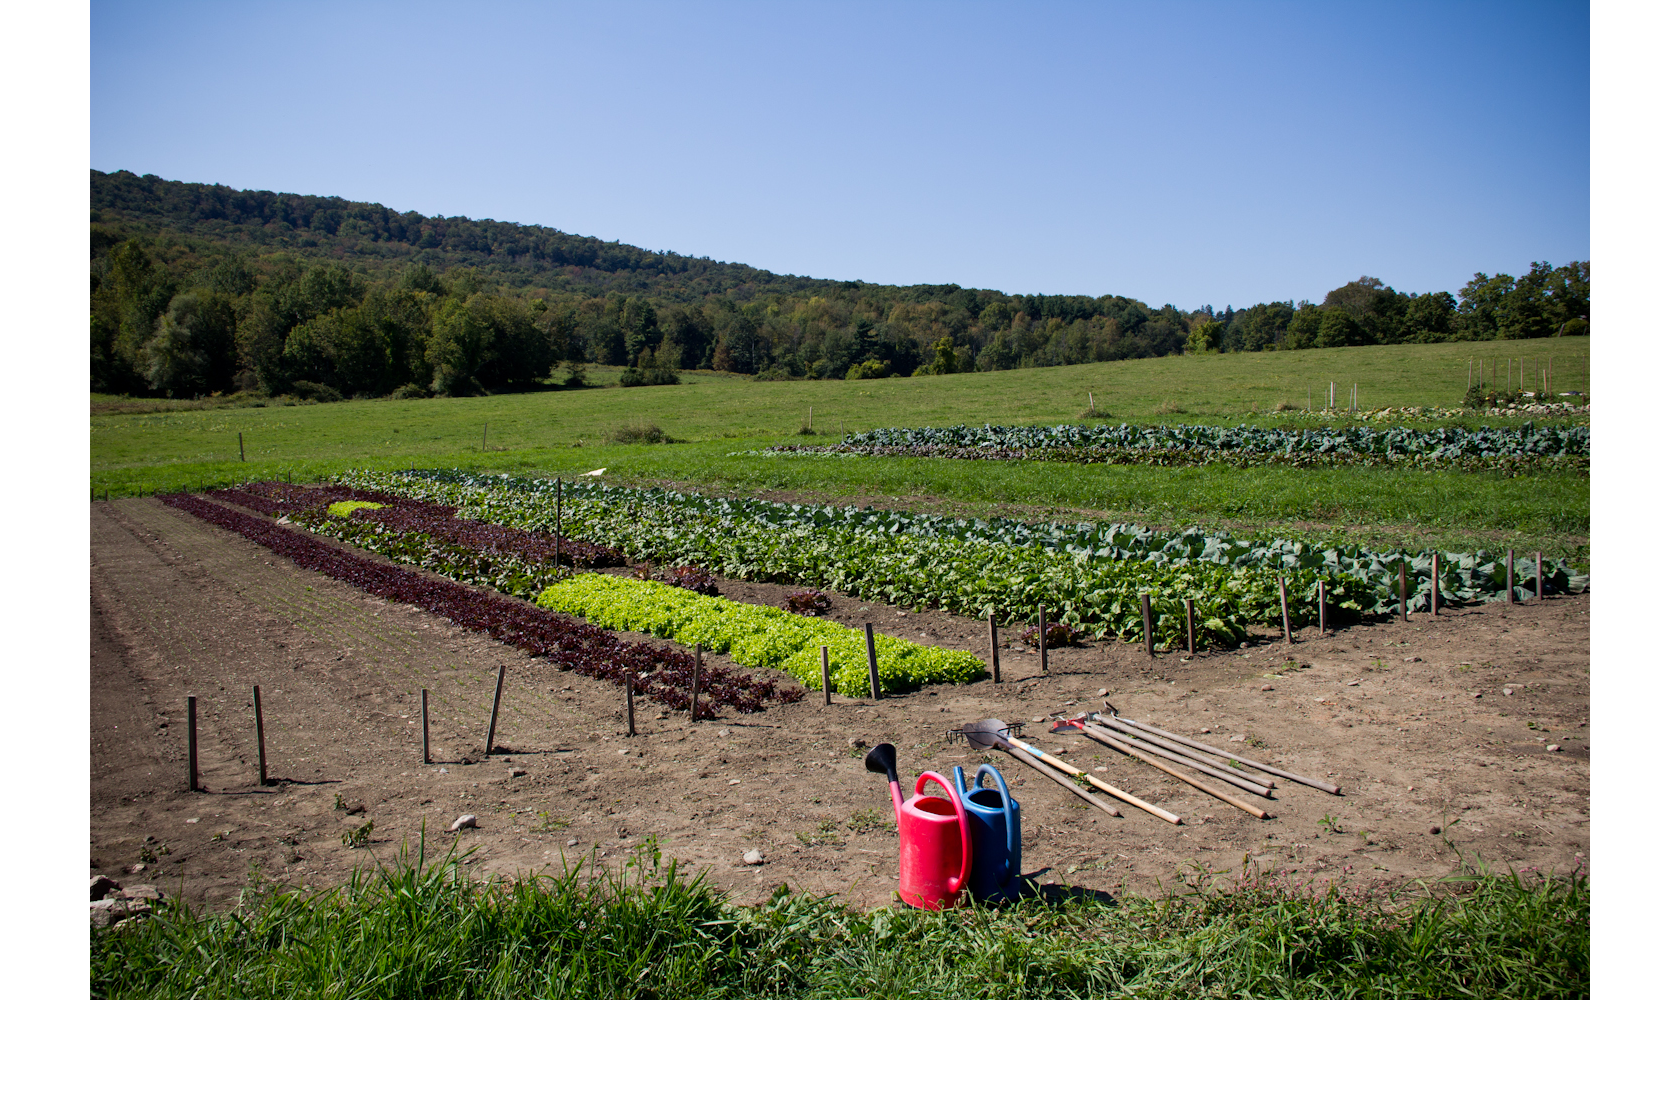 ASGT_FL_HighRes_Woven-Roots-Farm-Tyringham_Credit-Alexander-Boll.png